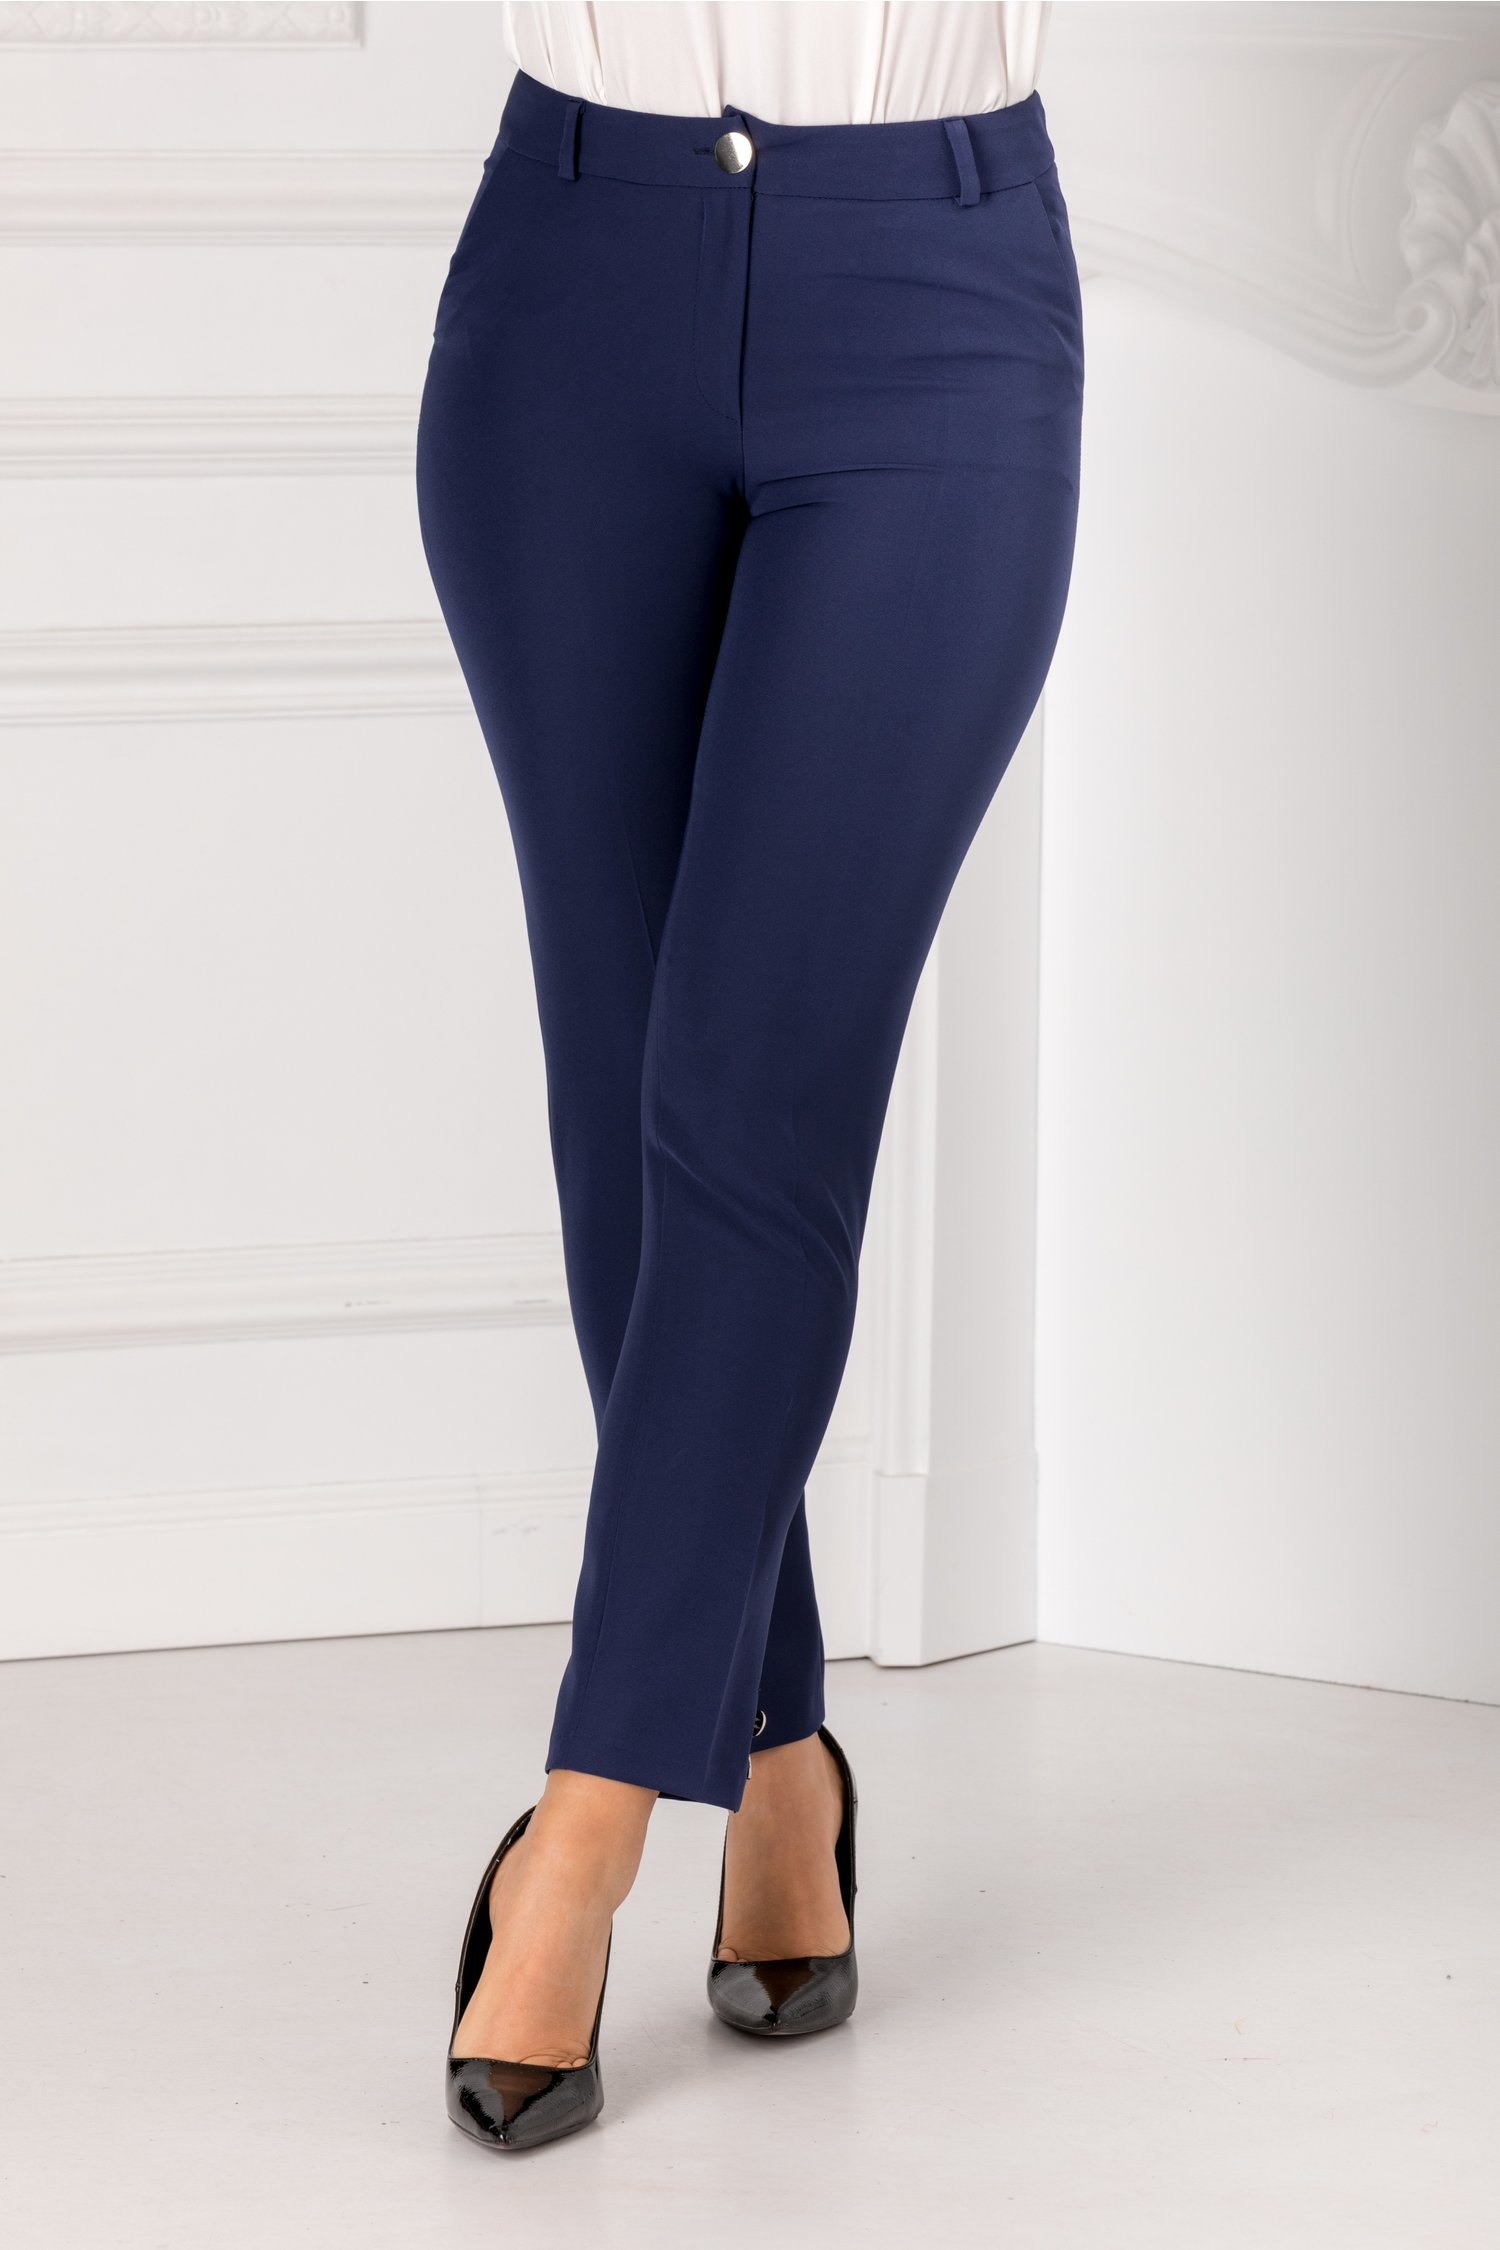 Pantaloni Leonard Collection bleumarin cu nasturi decorativi